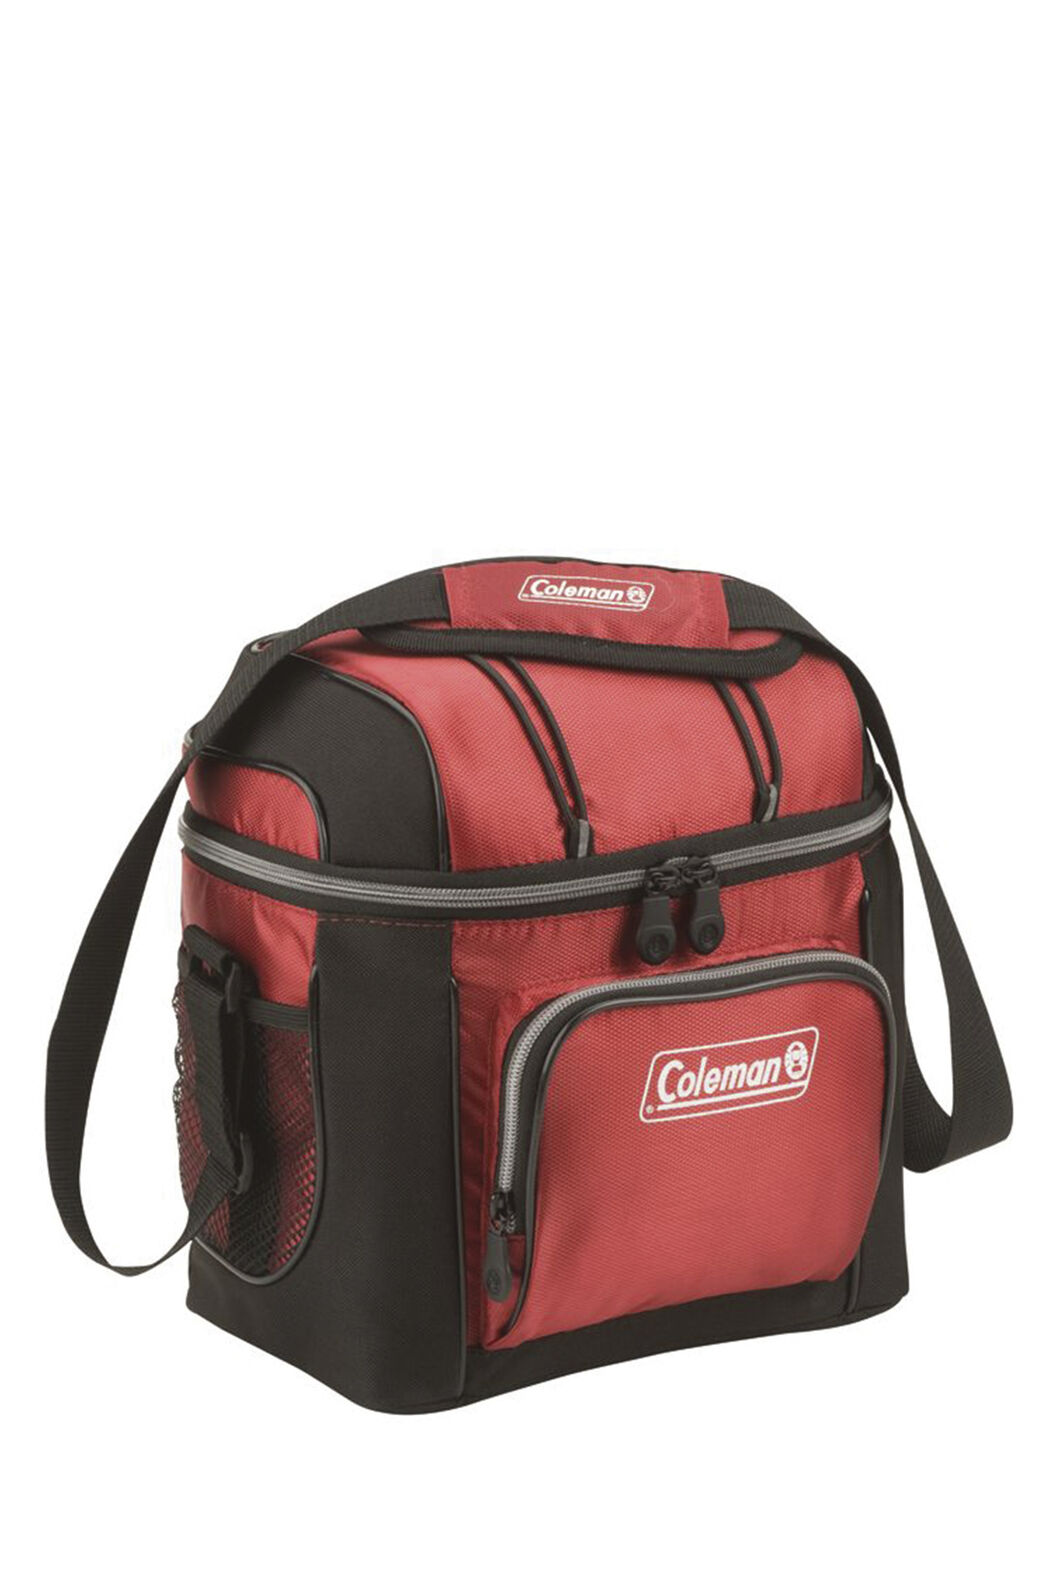 Coleman 9 Can Soft Cooler, None, hi-res